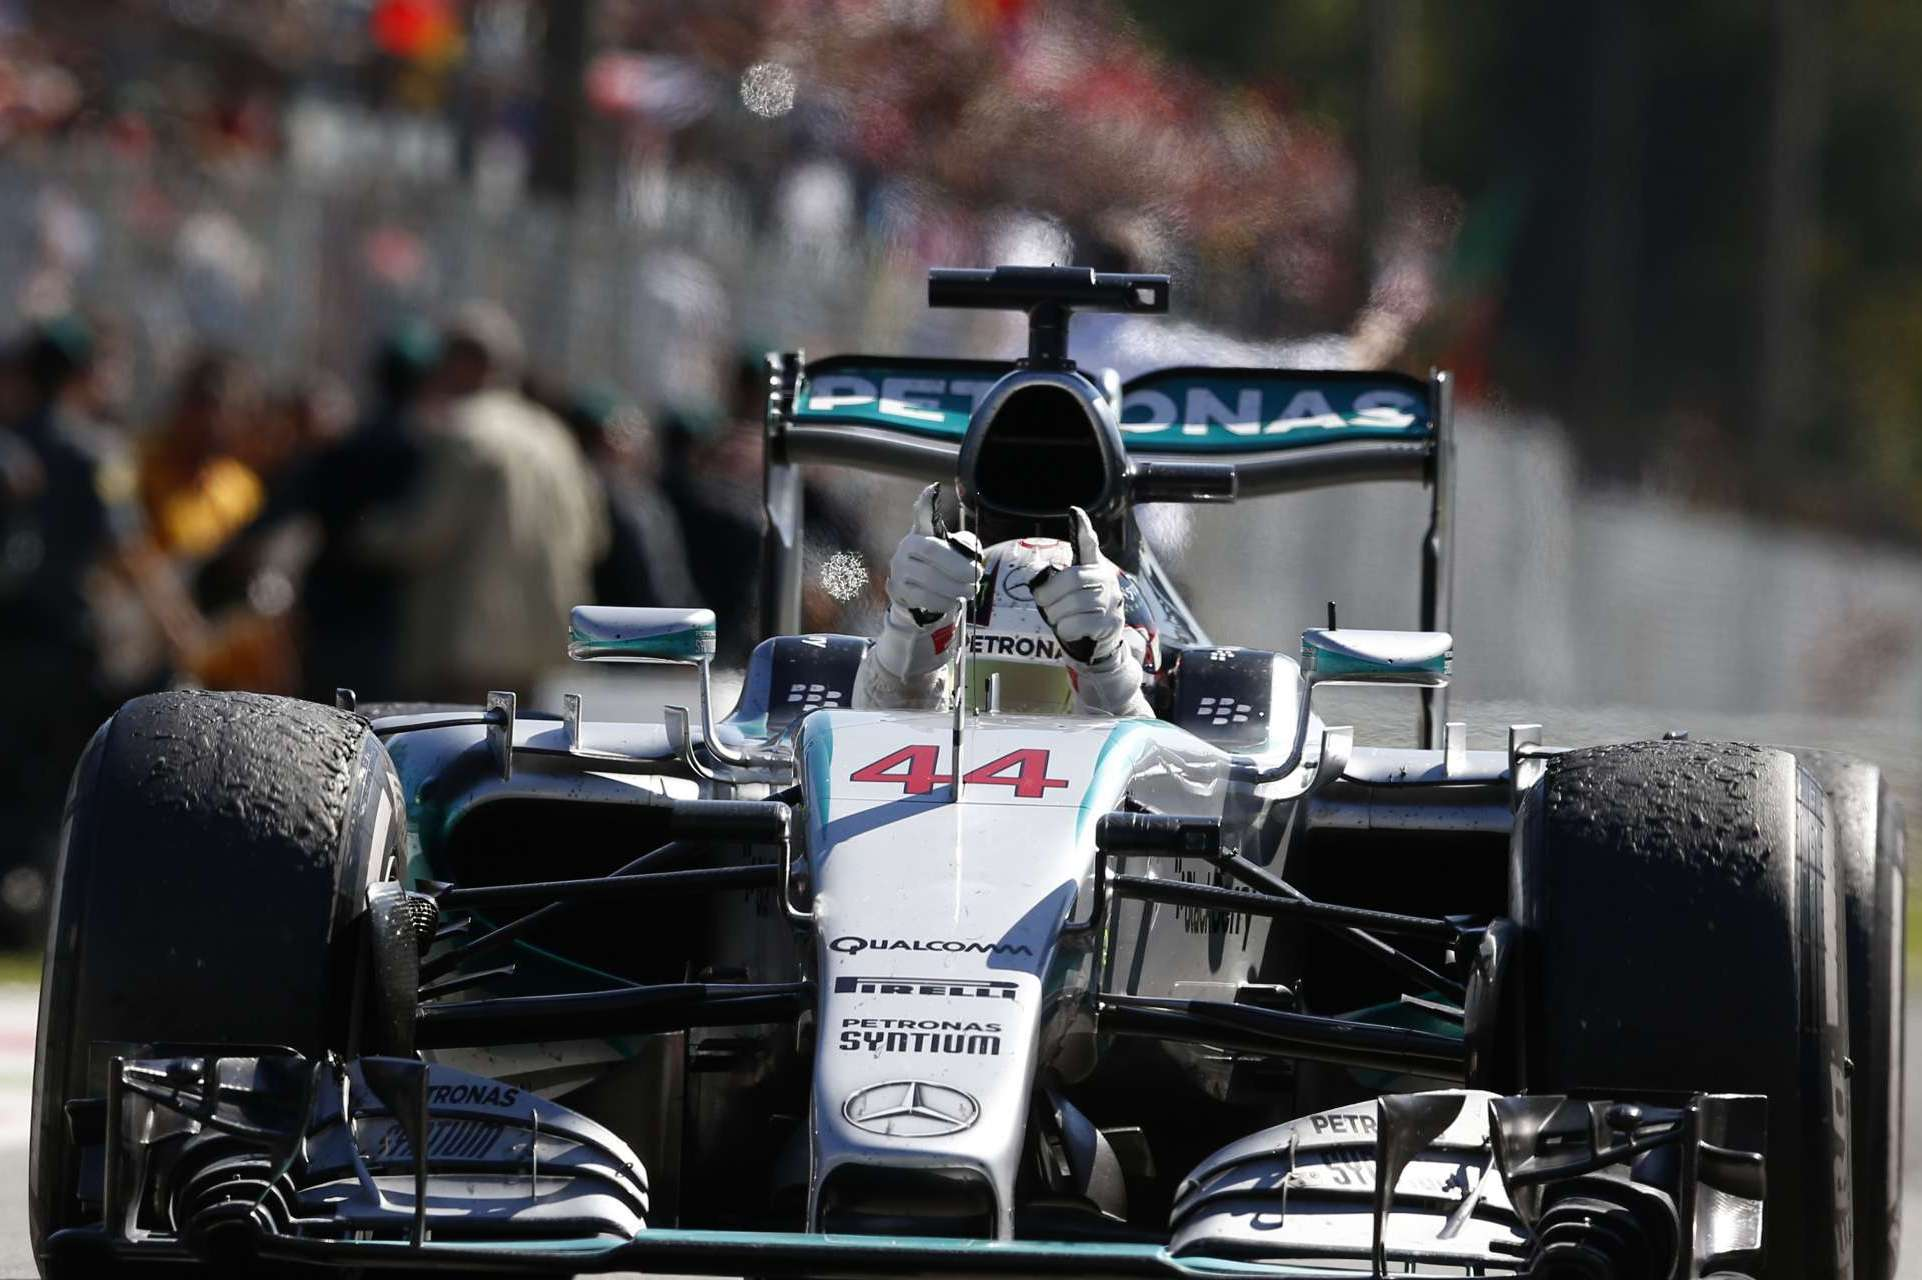 lewis-hamilton-mercedes-w06-hybrid-italy-gp-monza-f1-2015-his-2nd-grand-chelem